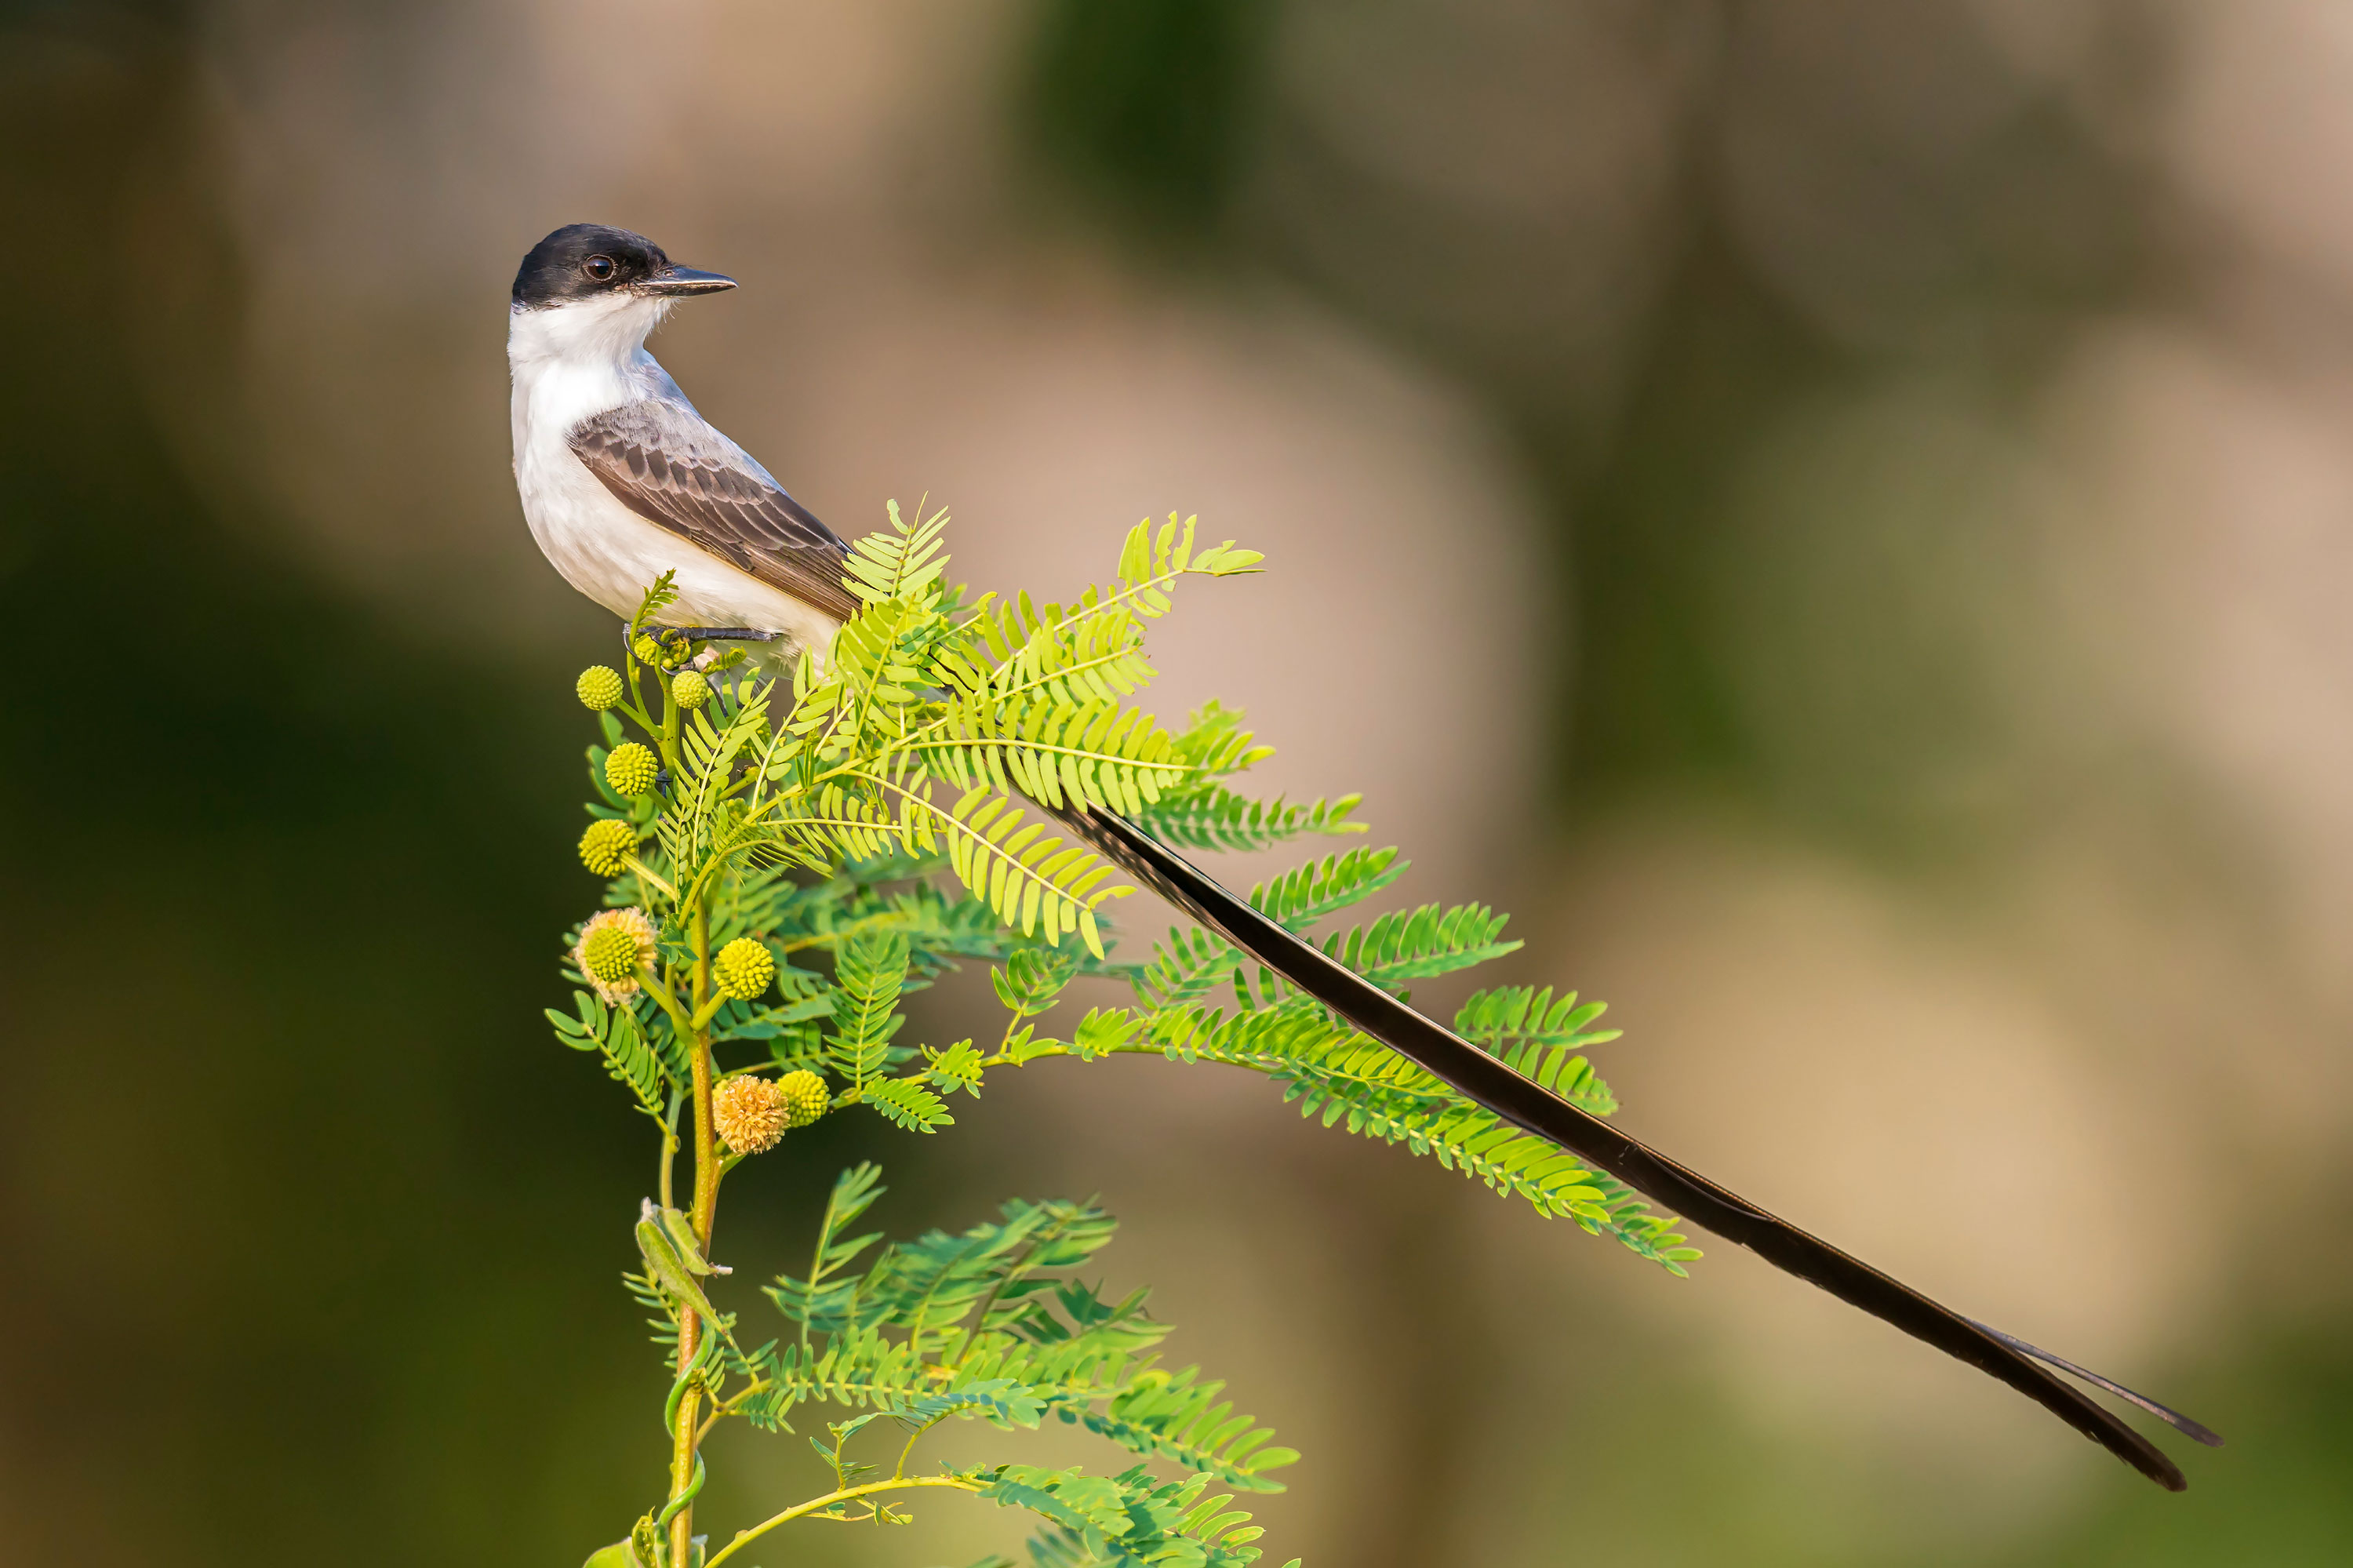 This bird tells rivals like it is by using its feathers to make a chirping noise